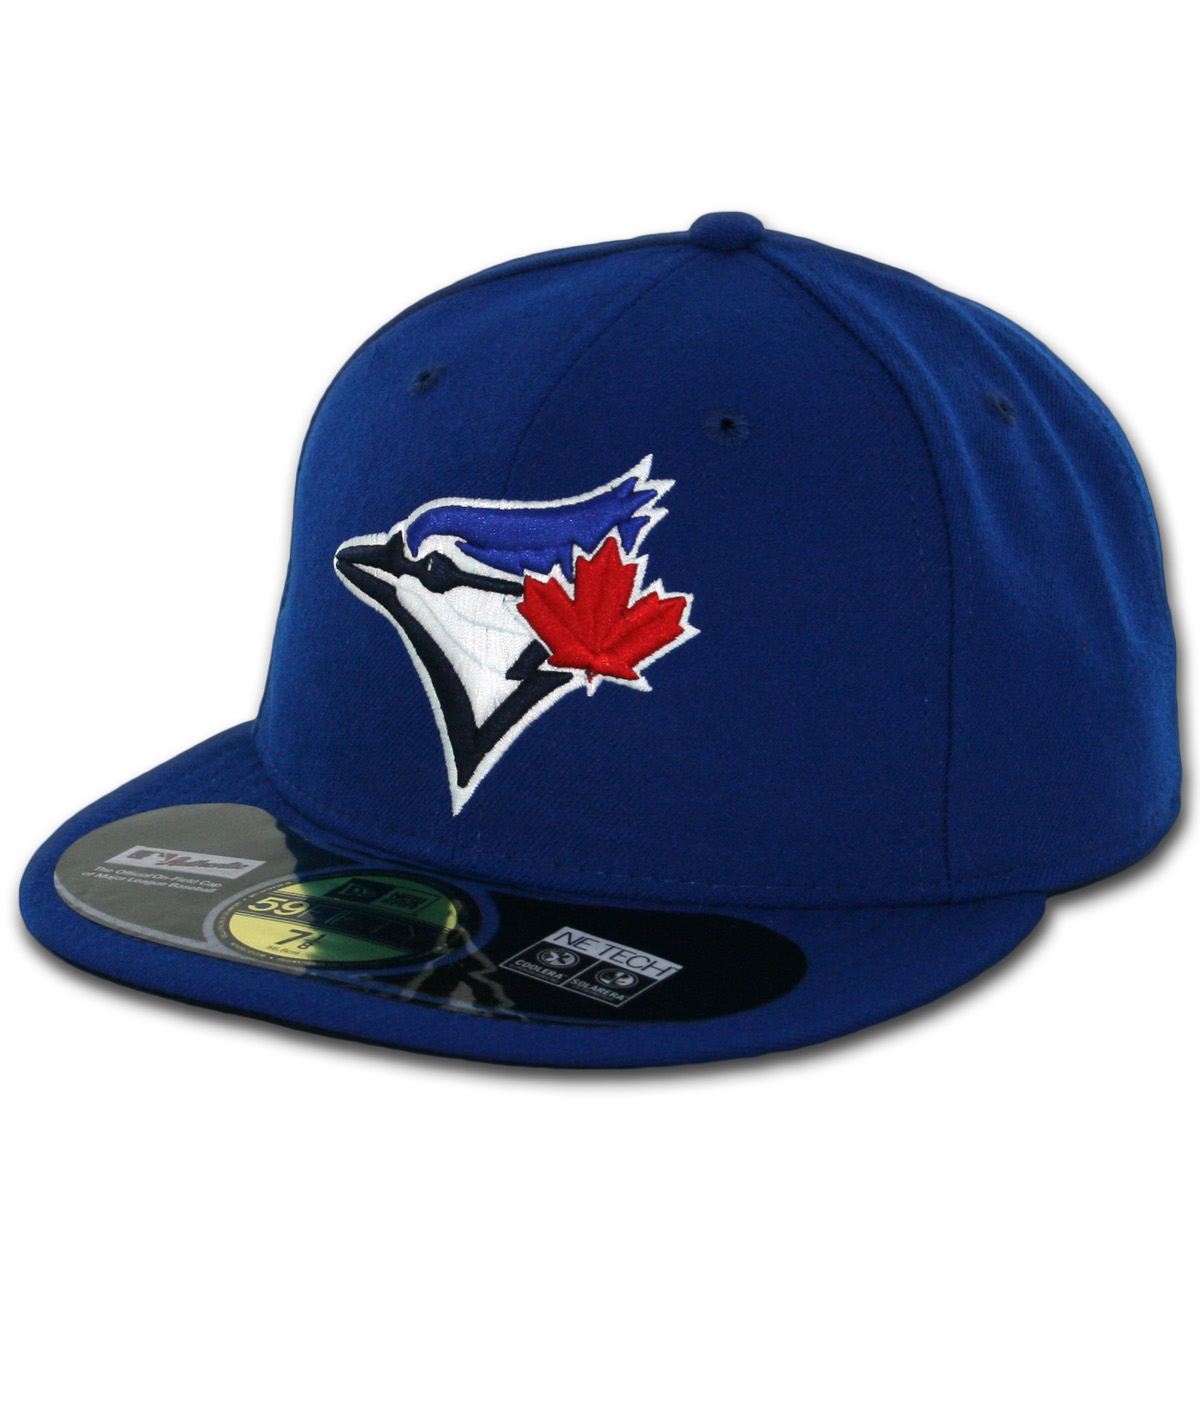 b39bab73d56fe3 New Era 59Fifty Toronto Blue Jays 2016 Game Authentic On Field Fitted Hat